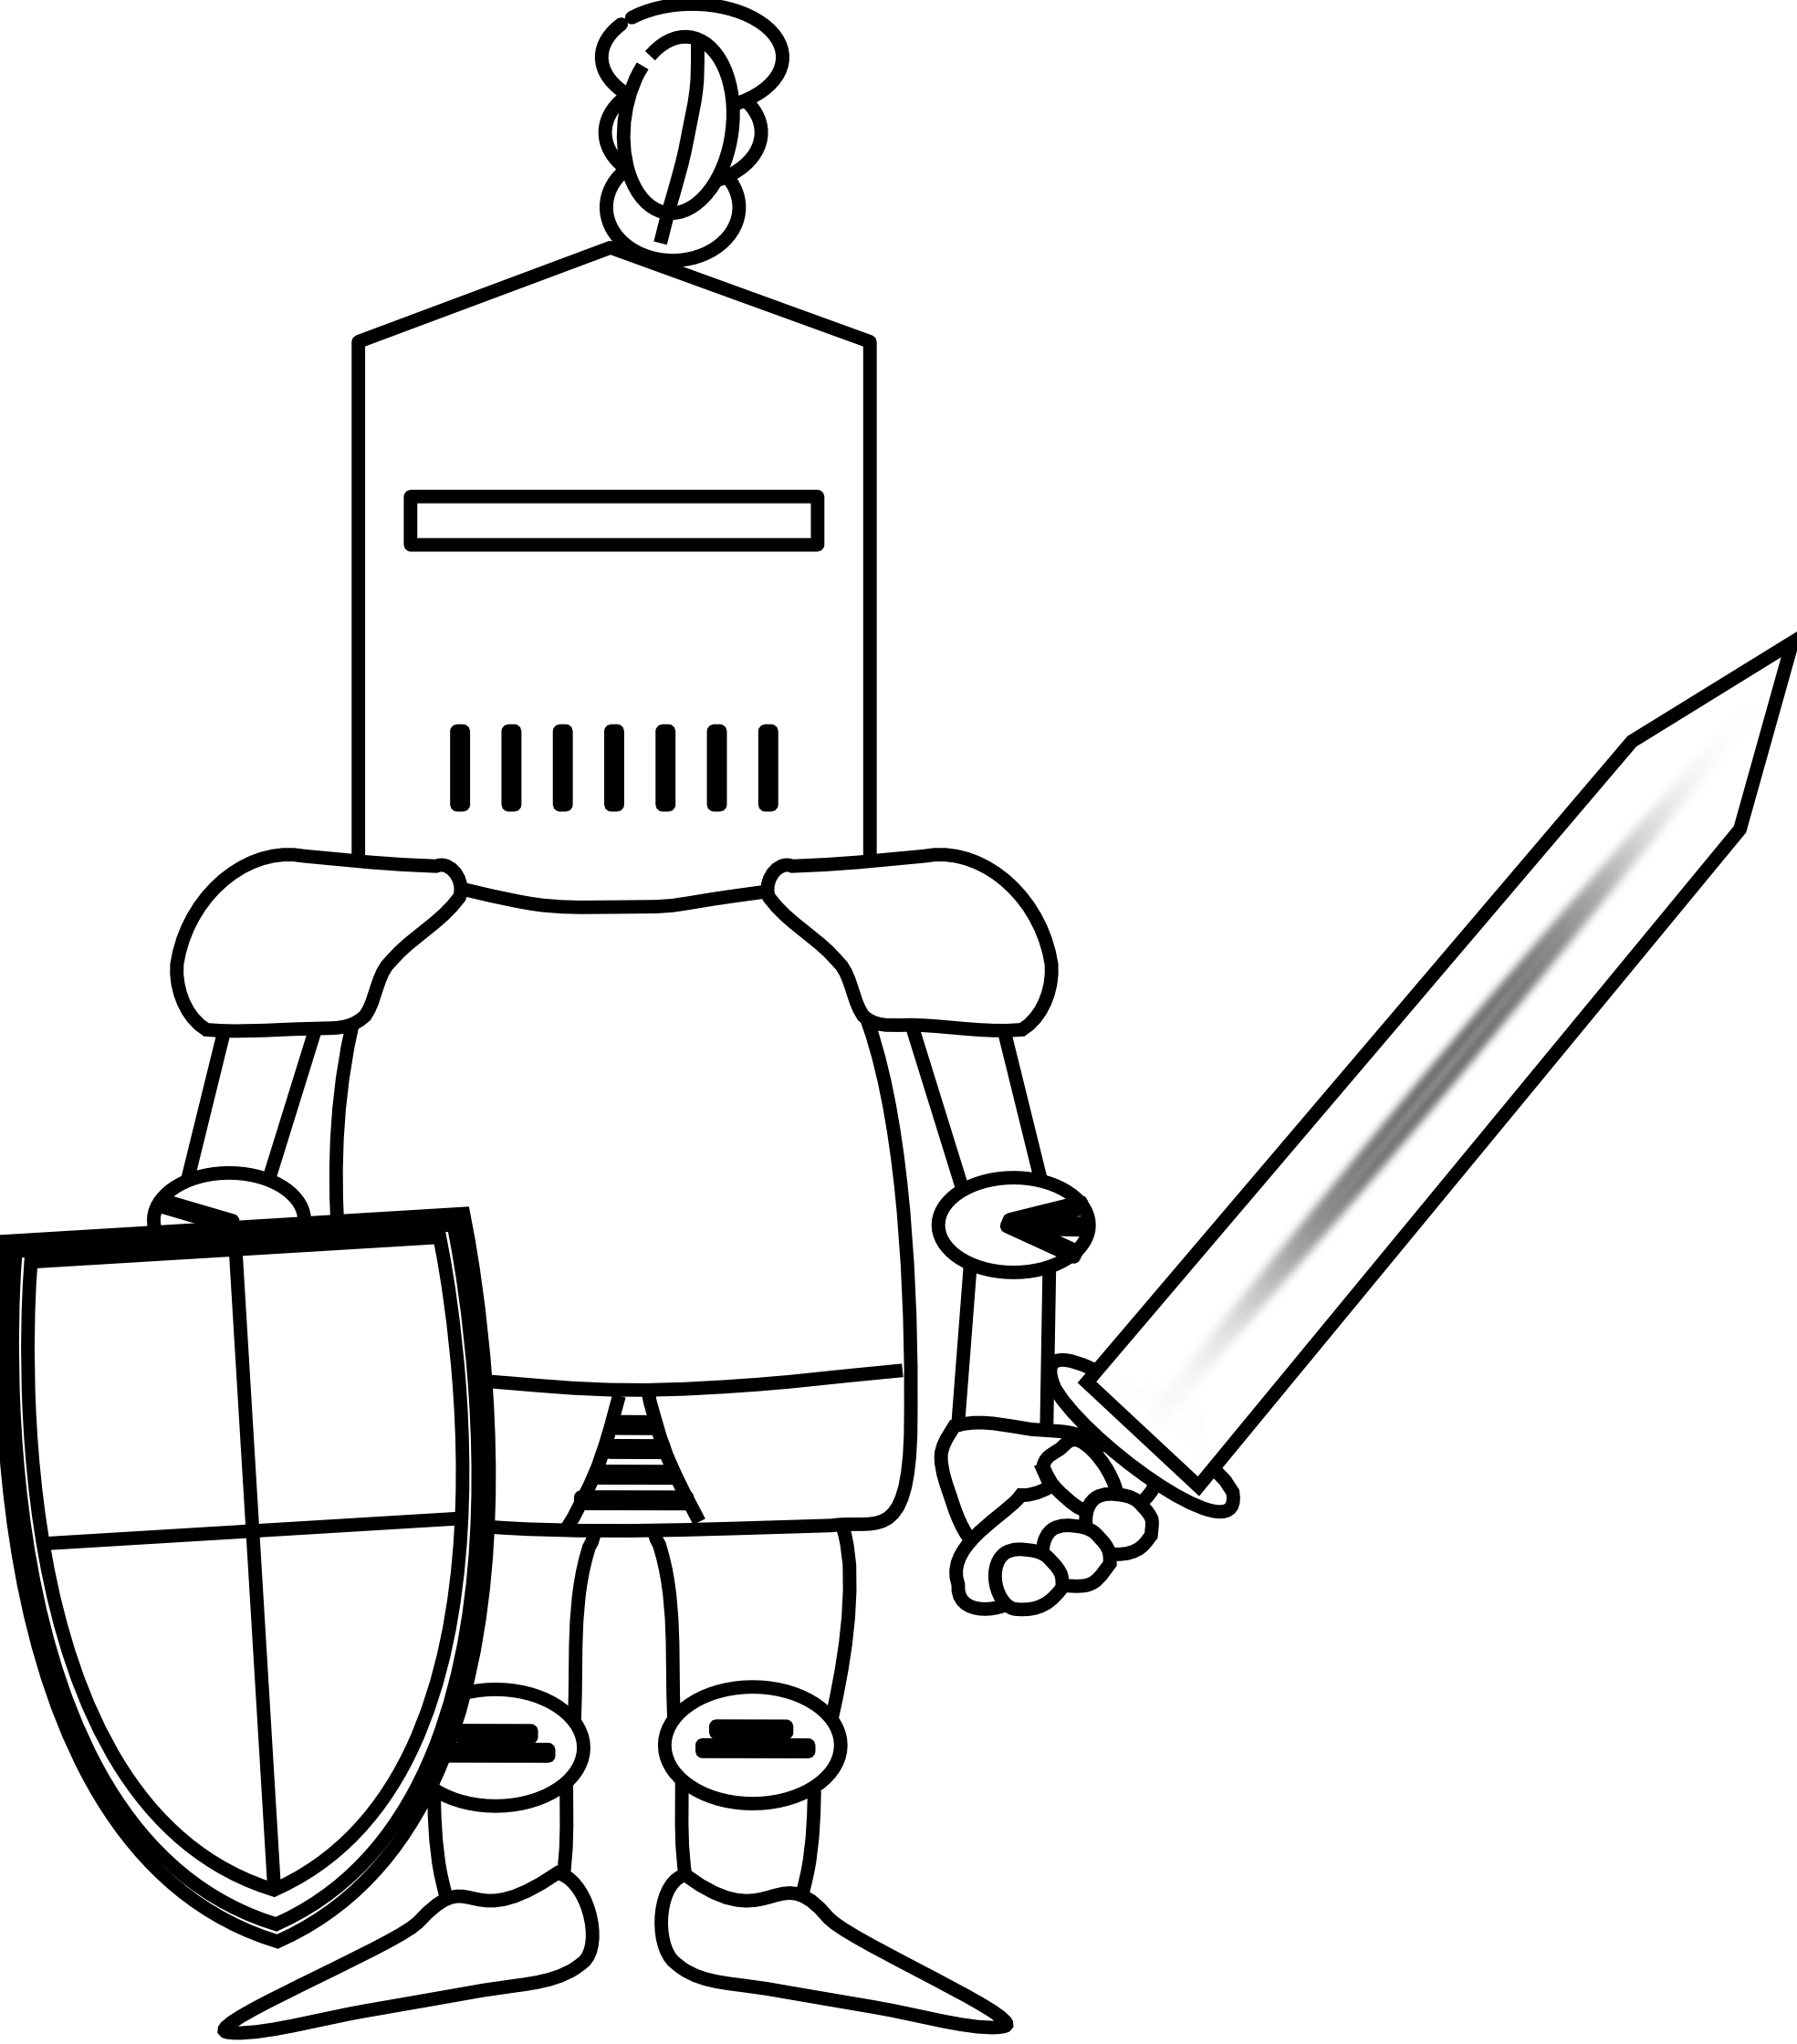 Ritter knight black white. Knights clipart cool